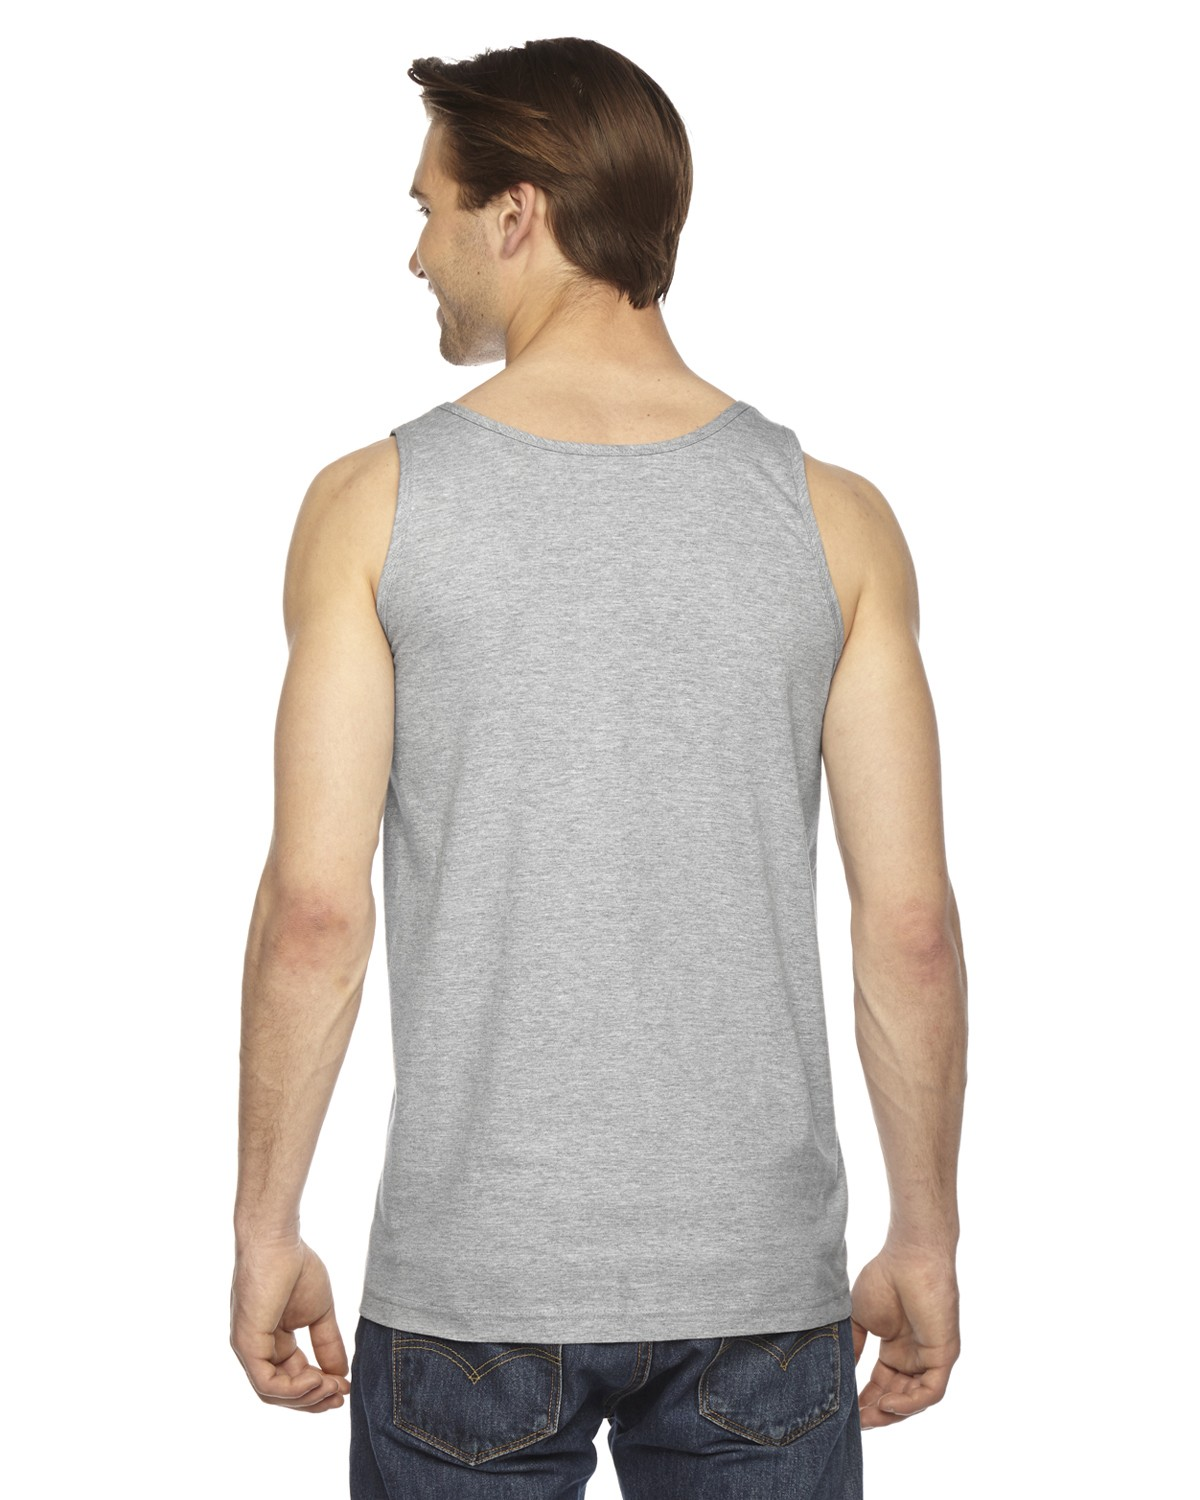 2408 American Apparel HEATHER GREY